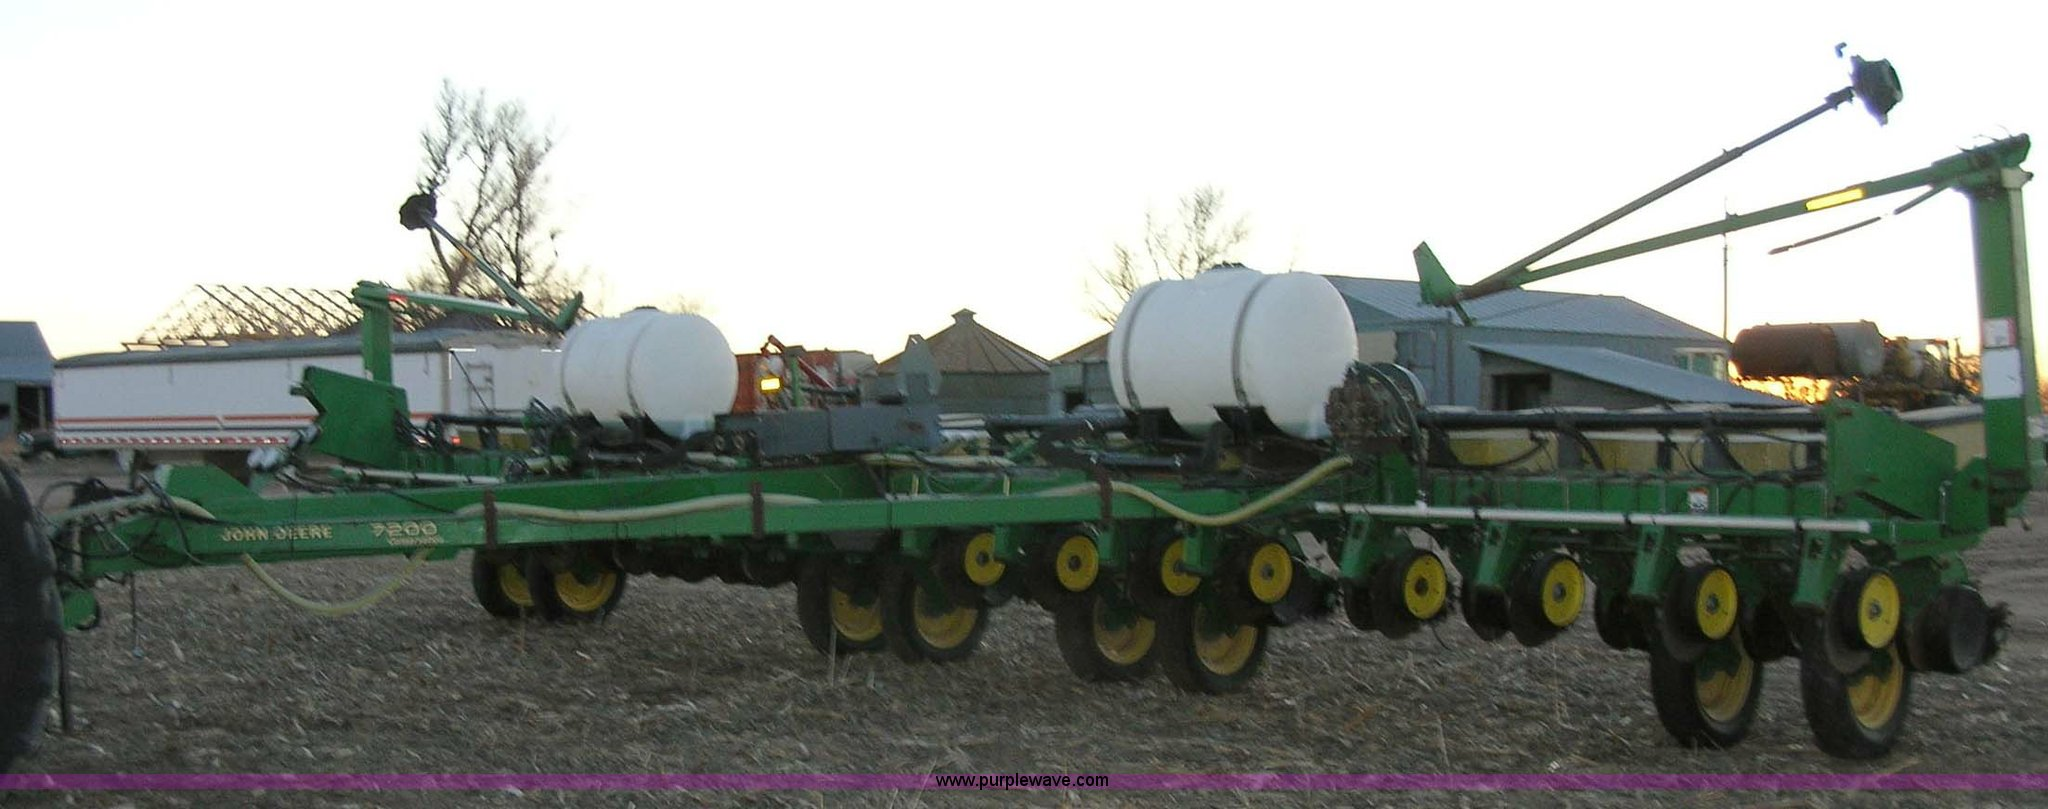 John Deere 7200 16 Row Planter Item 1006 Sold January 2